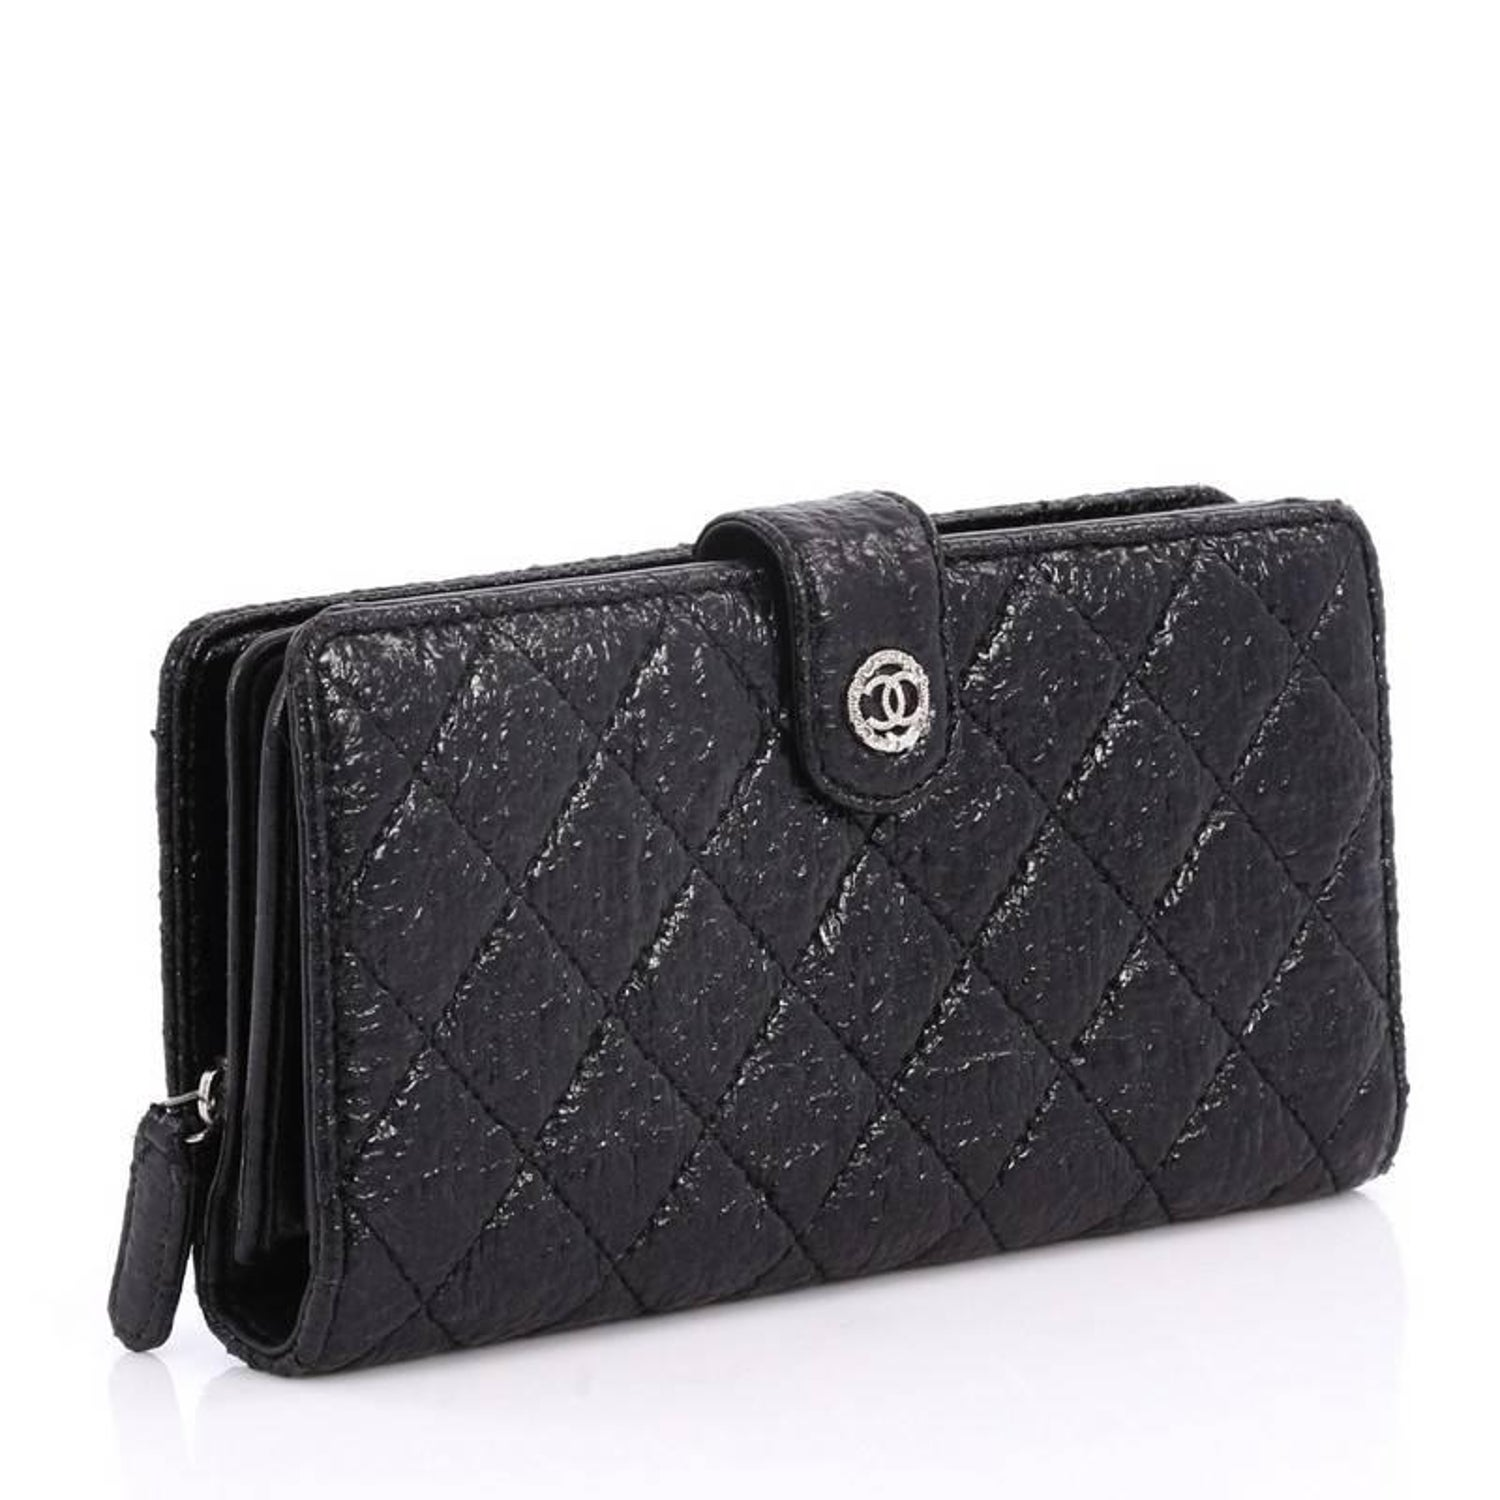 6c2a7e5c32c2 Chanel French Wallet Quilted Glazed Crackled Leather Long at 1stdibs